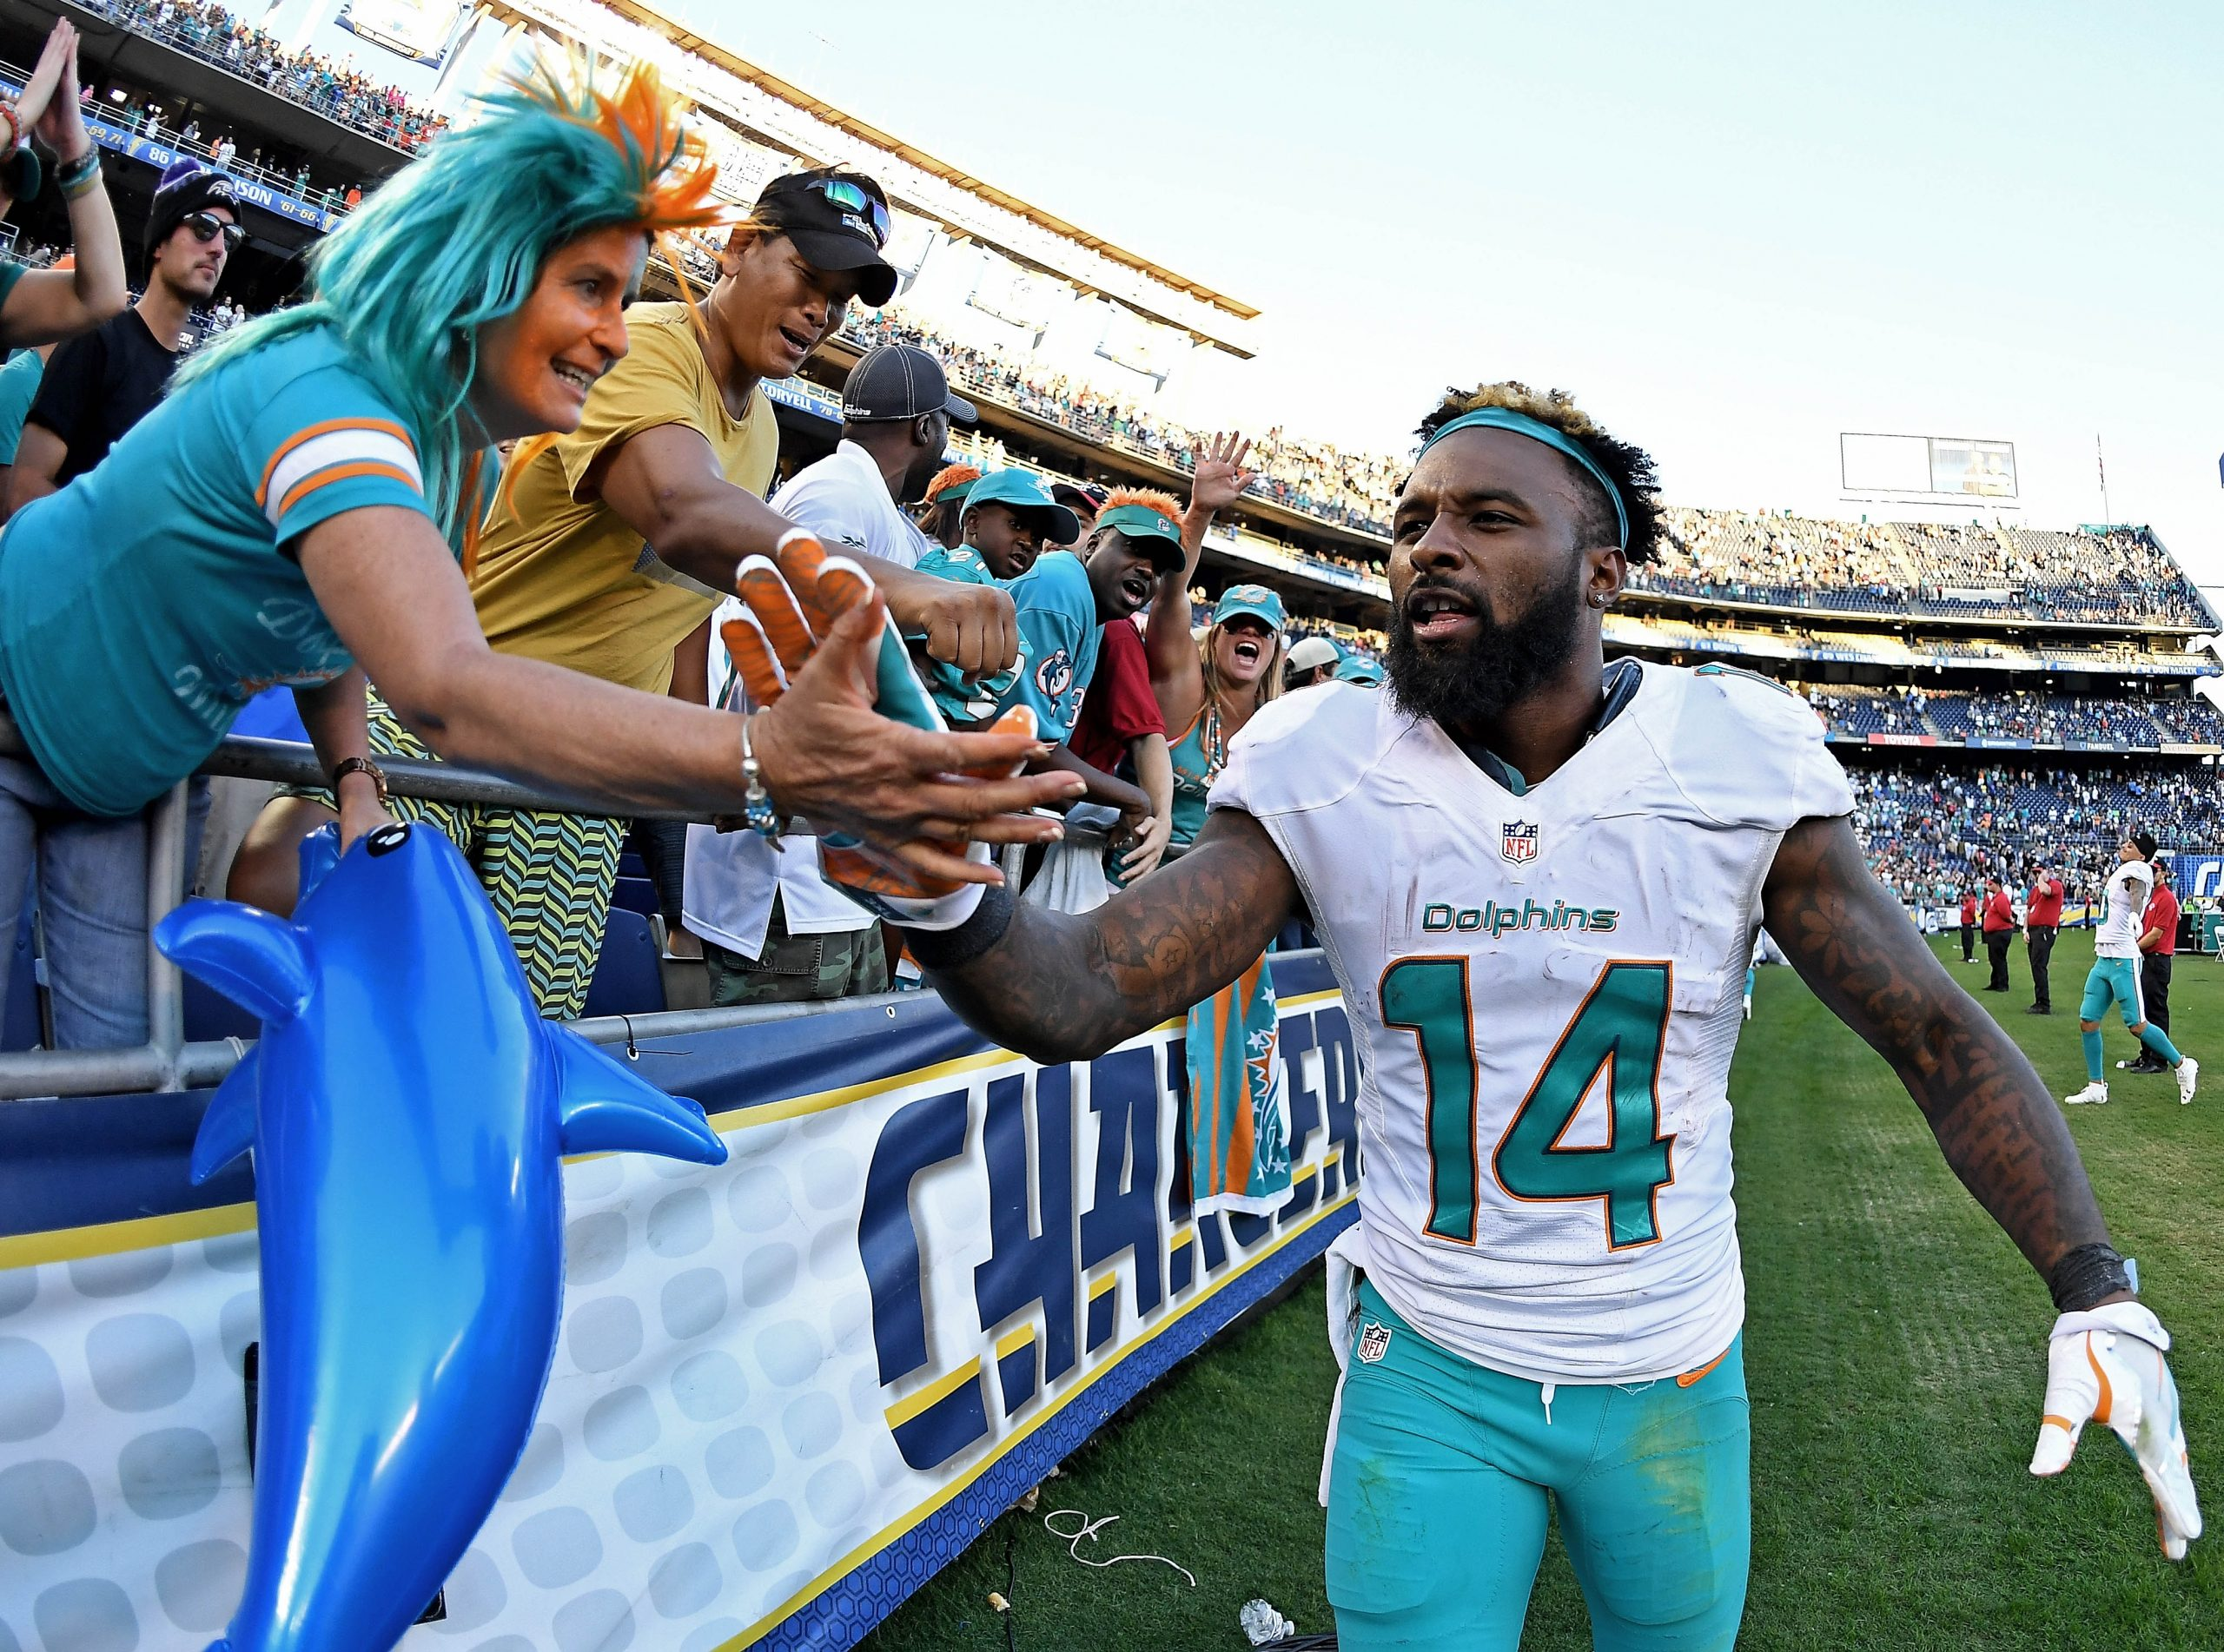 Five-Game Winning Streak Earns Miami Dolphins Respect From pertaining to How Many Super Bowls Do Miami Dolphins Have